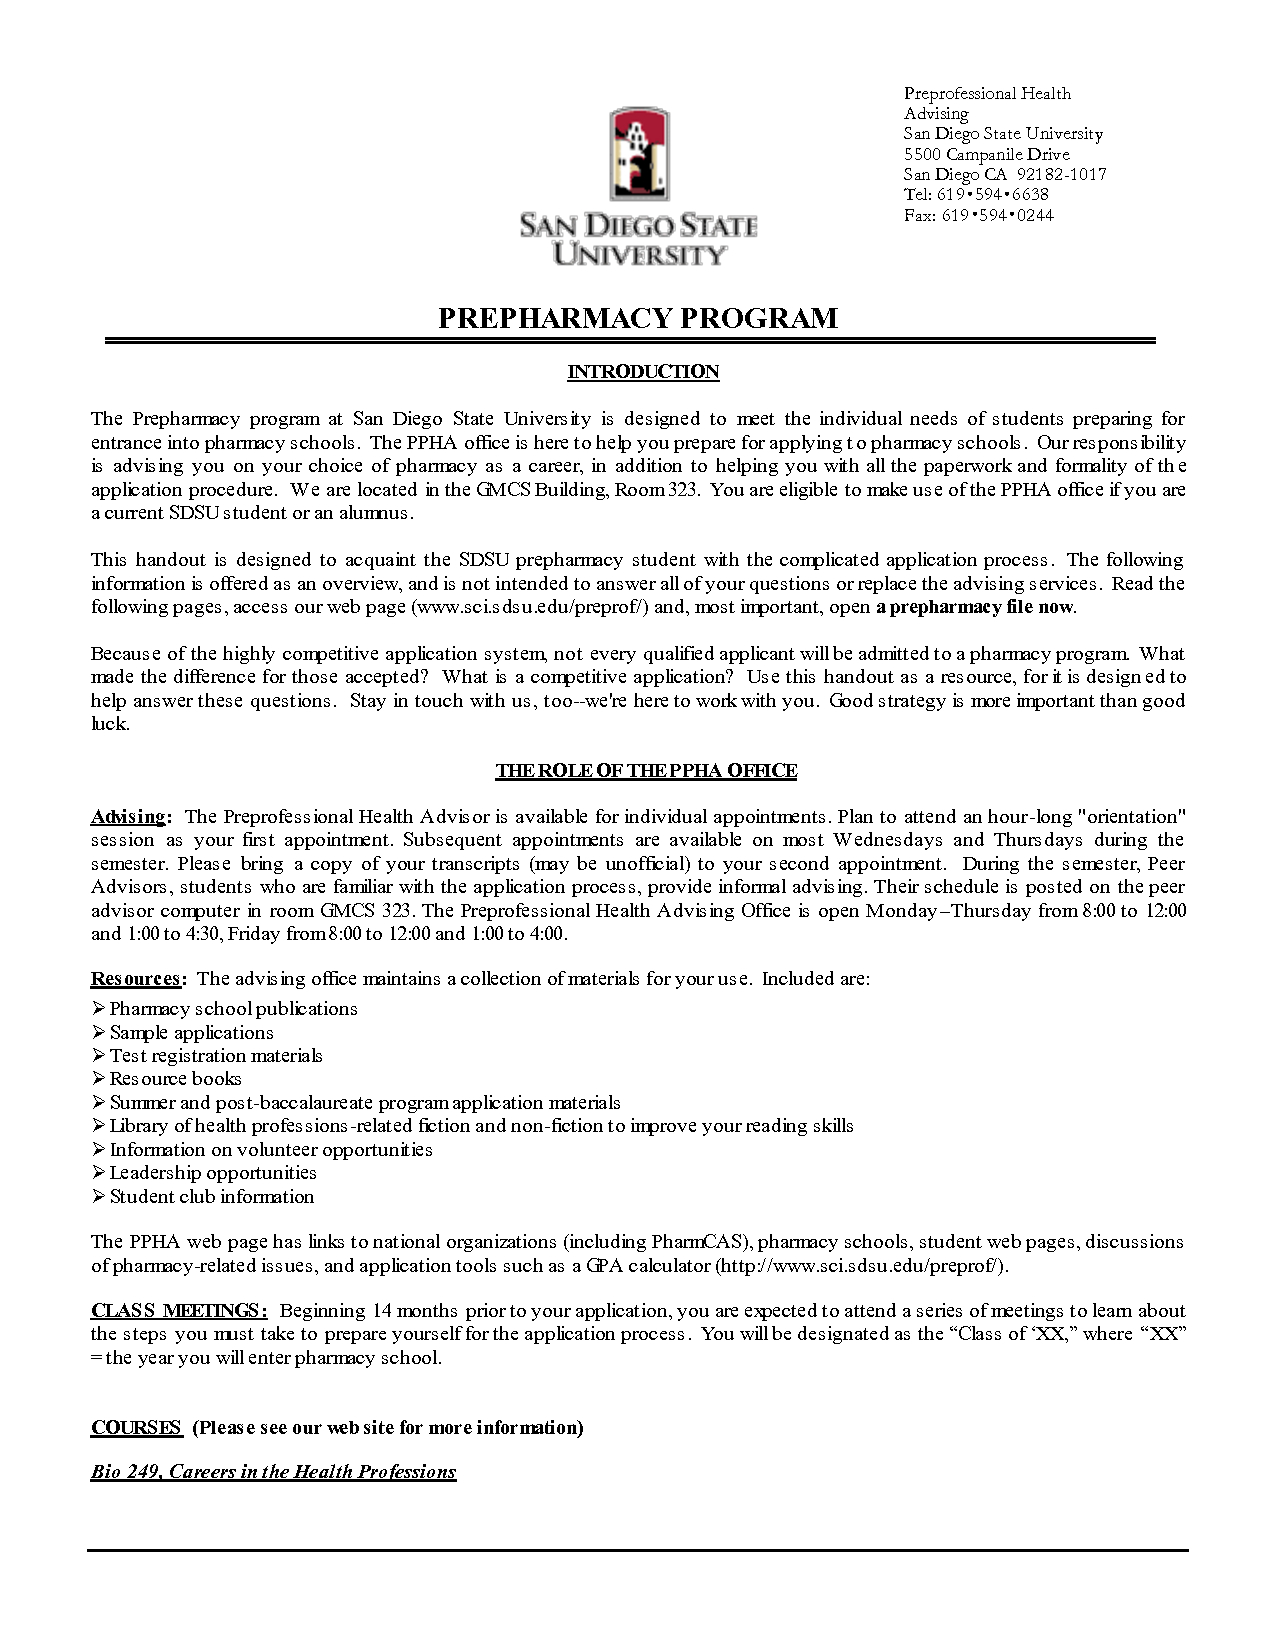 Scholarship Letter Of Recommendation Template - Pharmacy School Essay Pharmacy School Essay Ideas for Othello